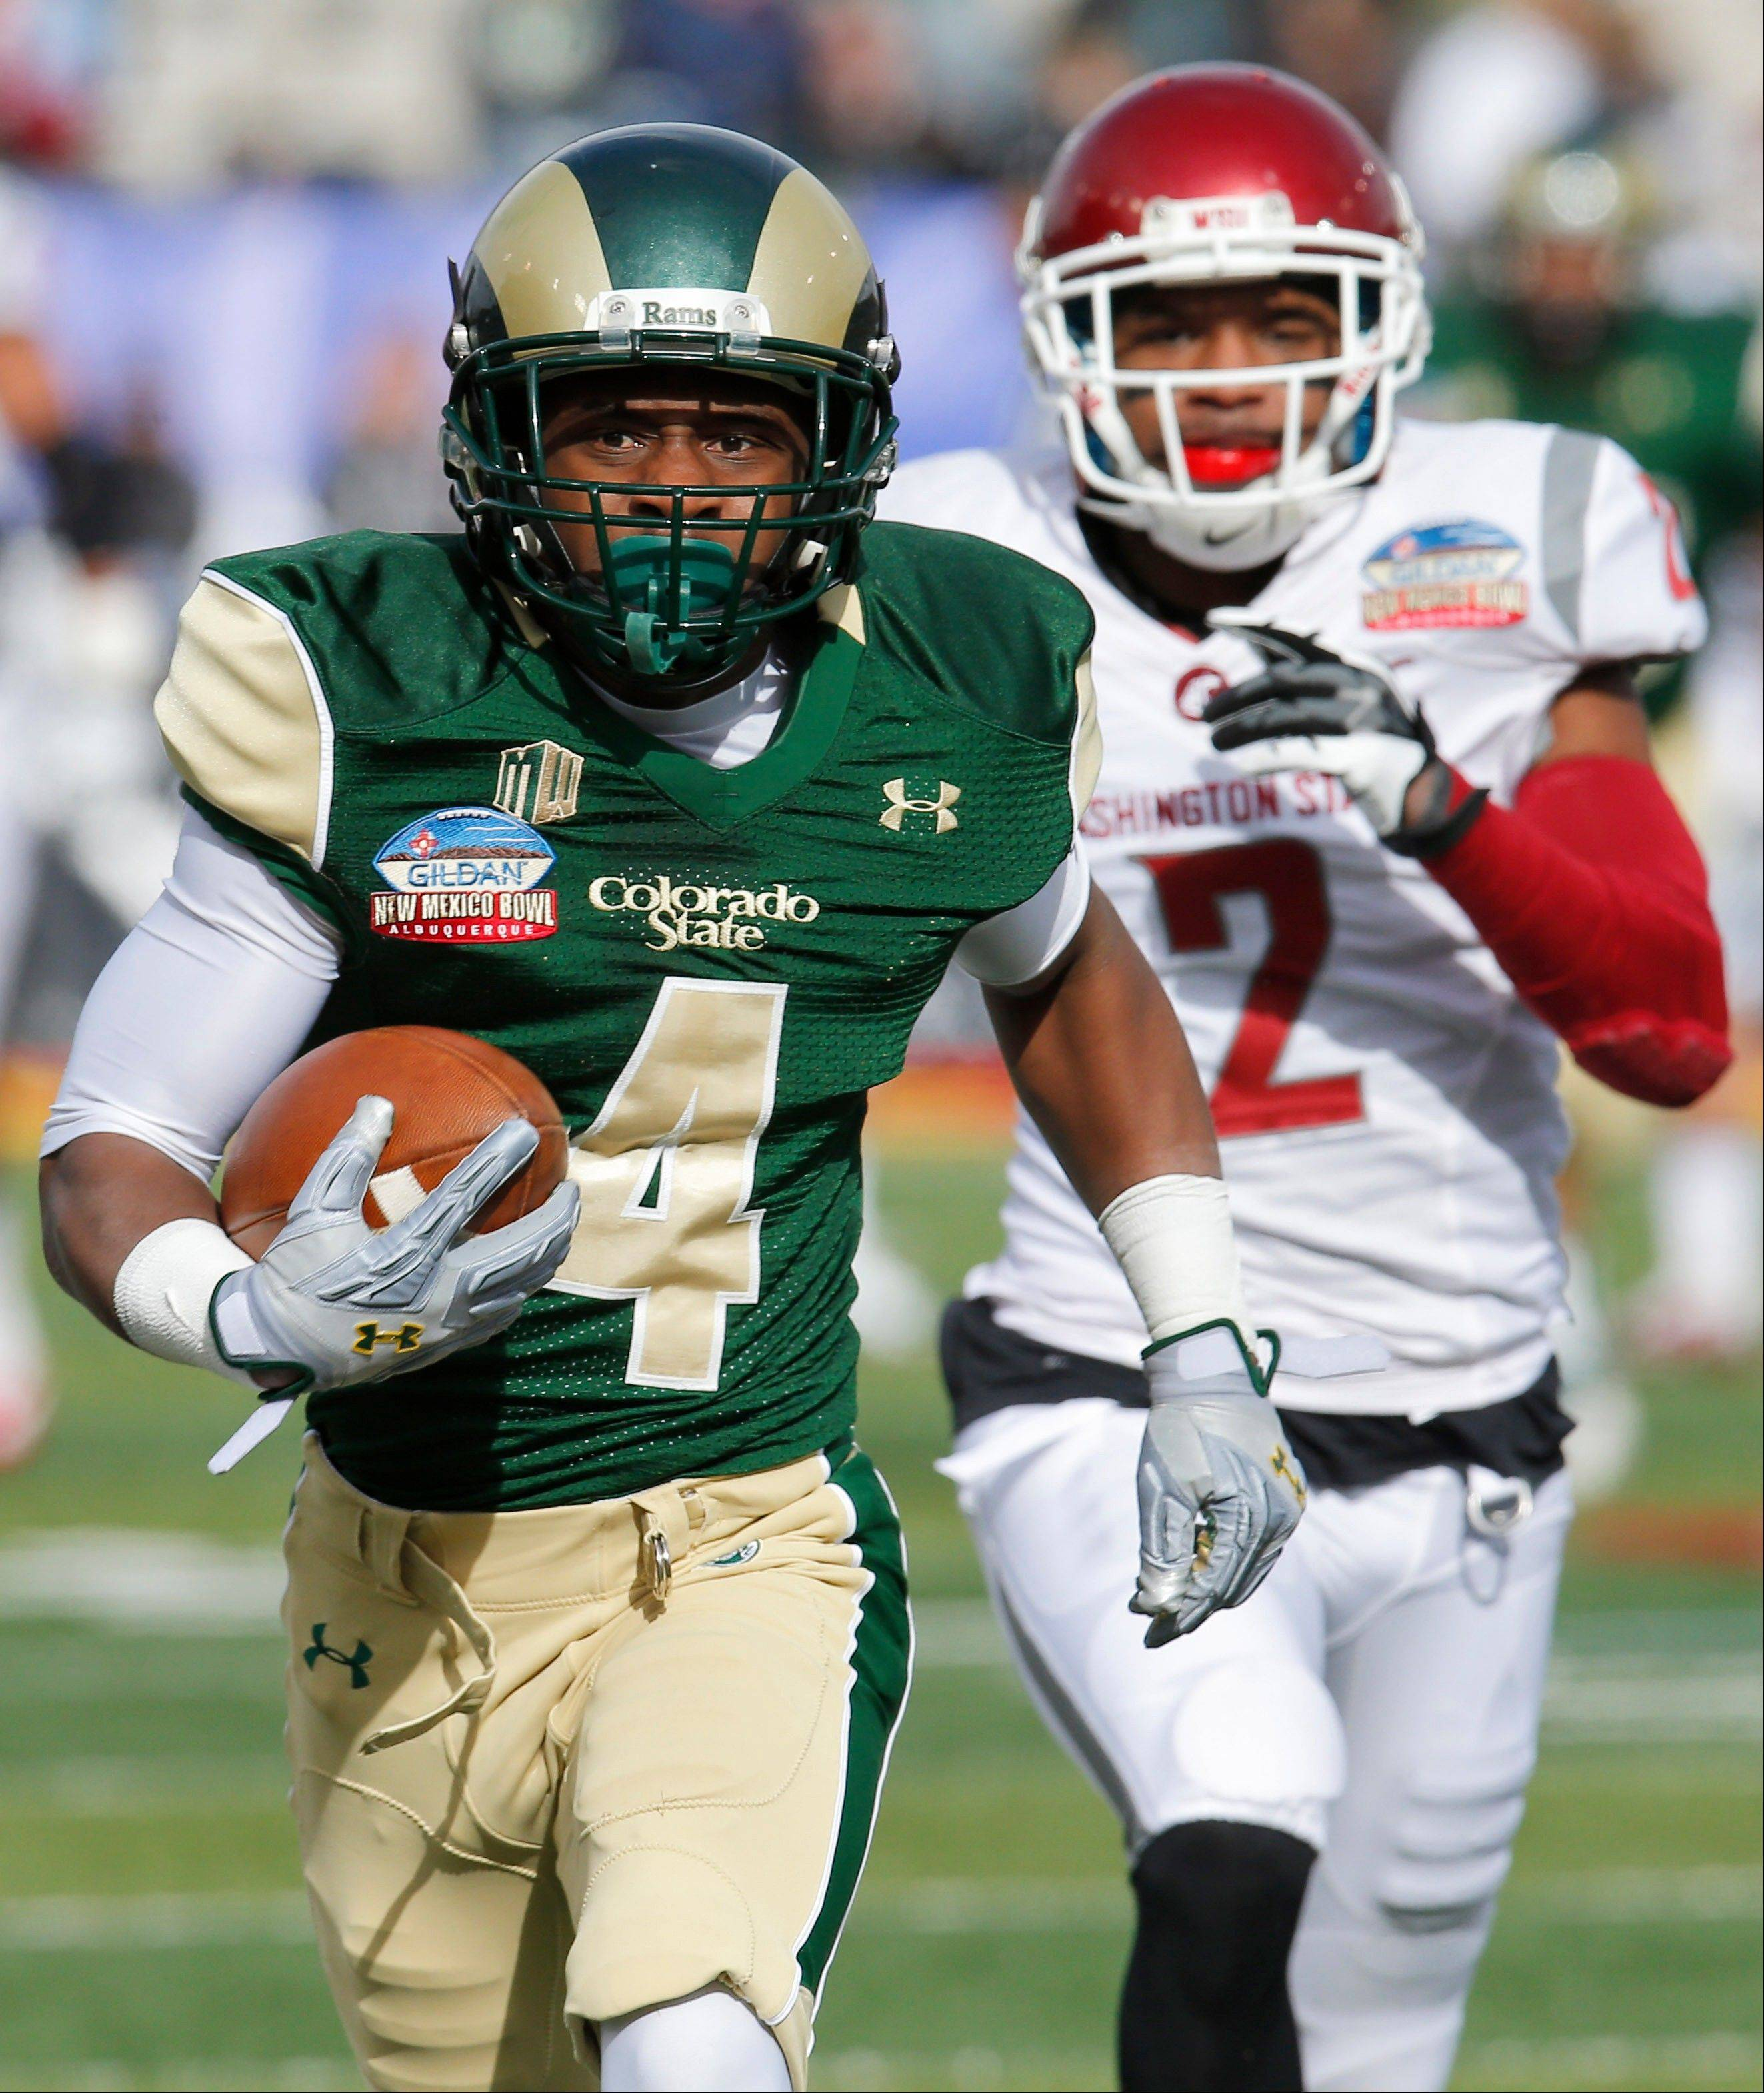 Colorado St. pulls off shocker in New Mexico Bowl